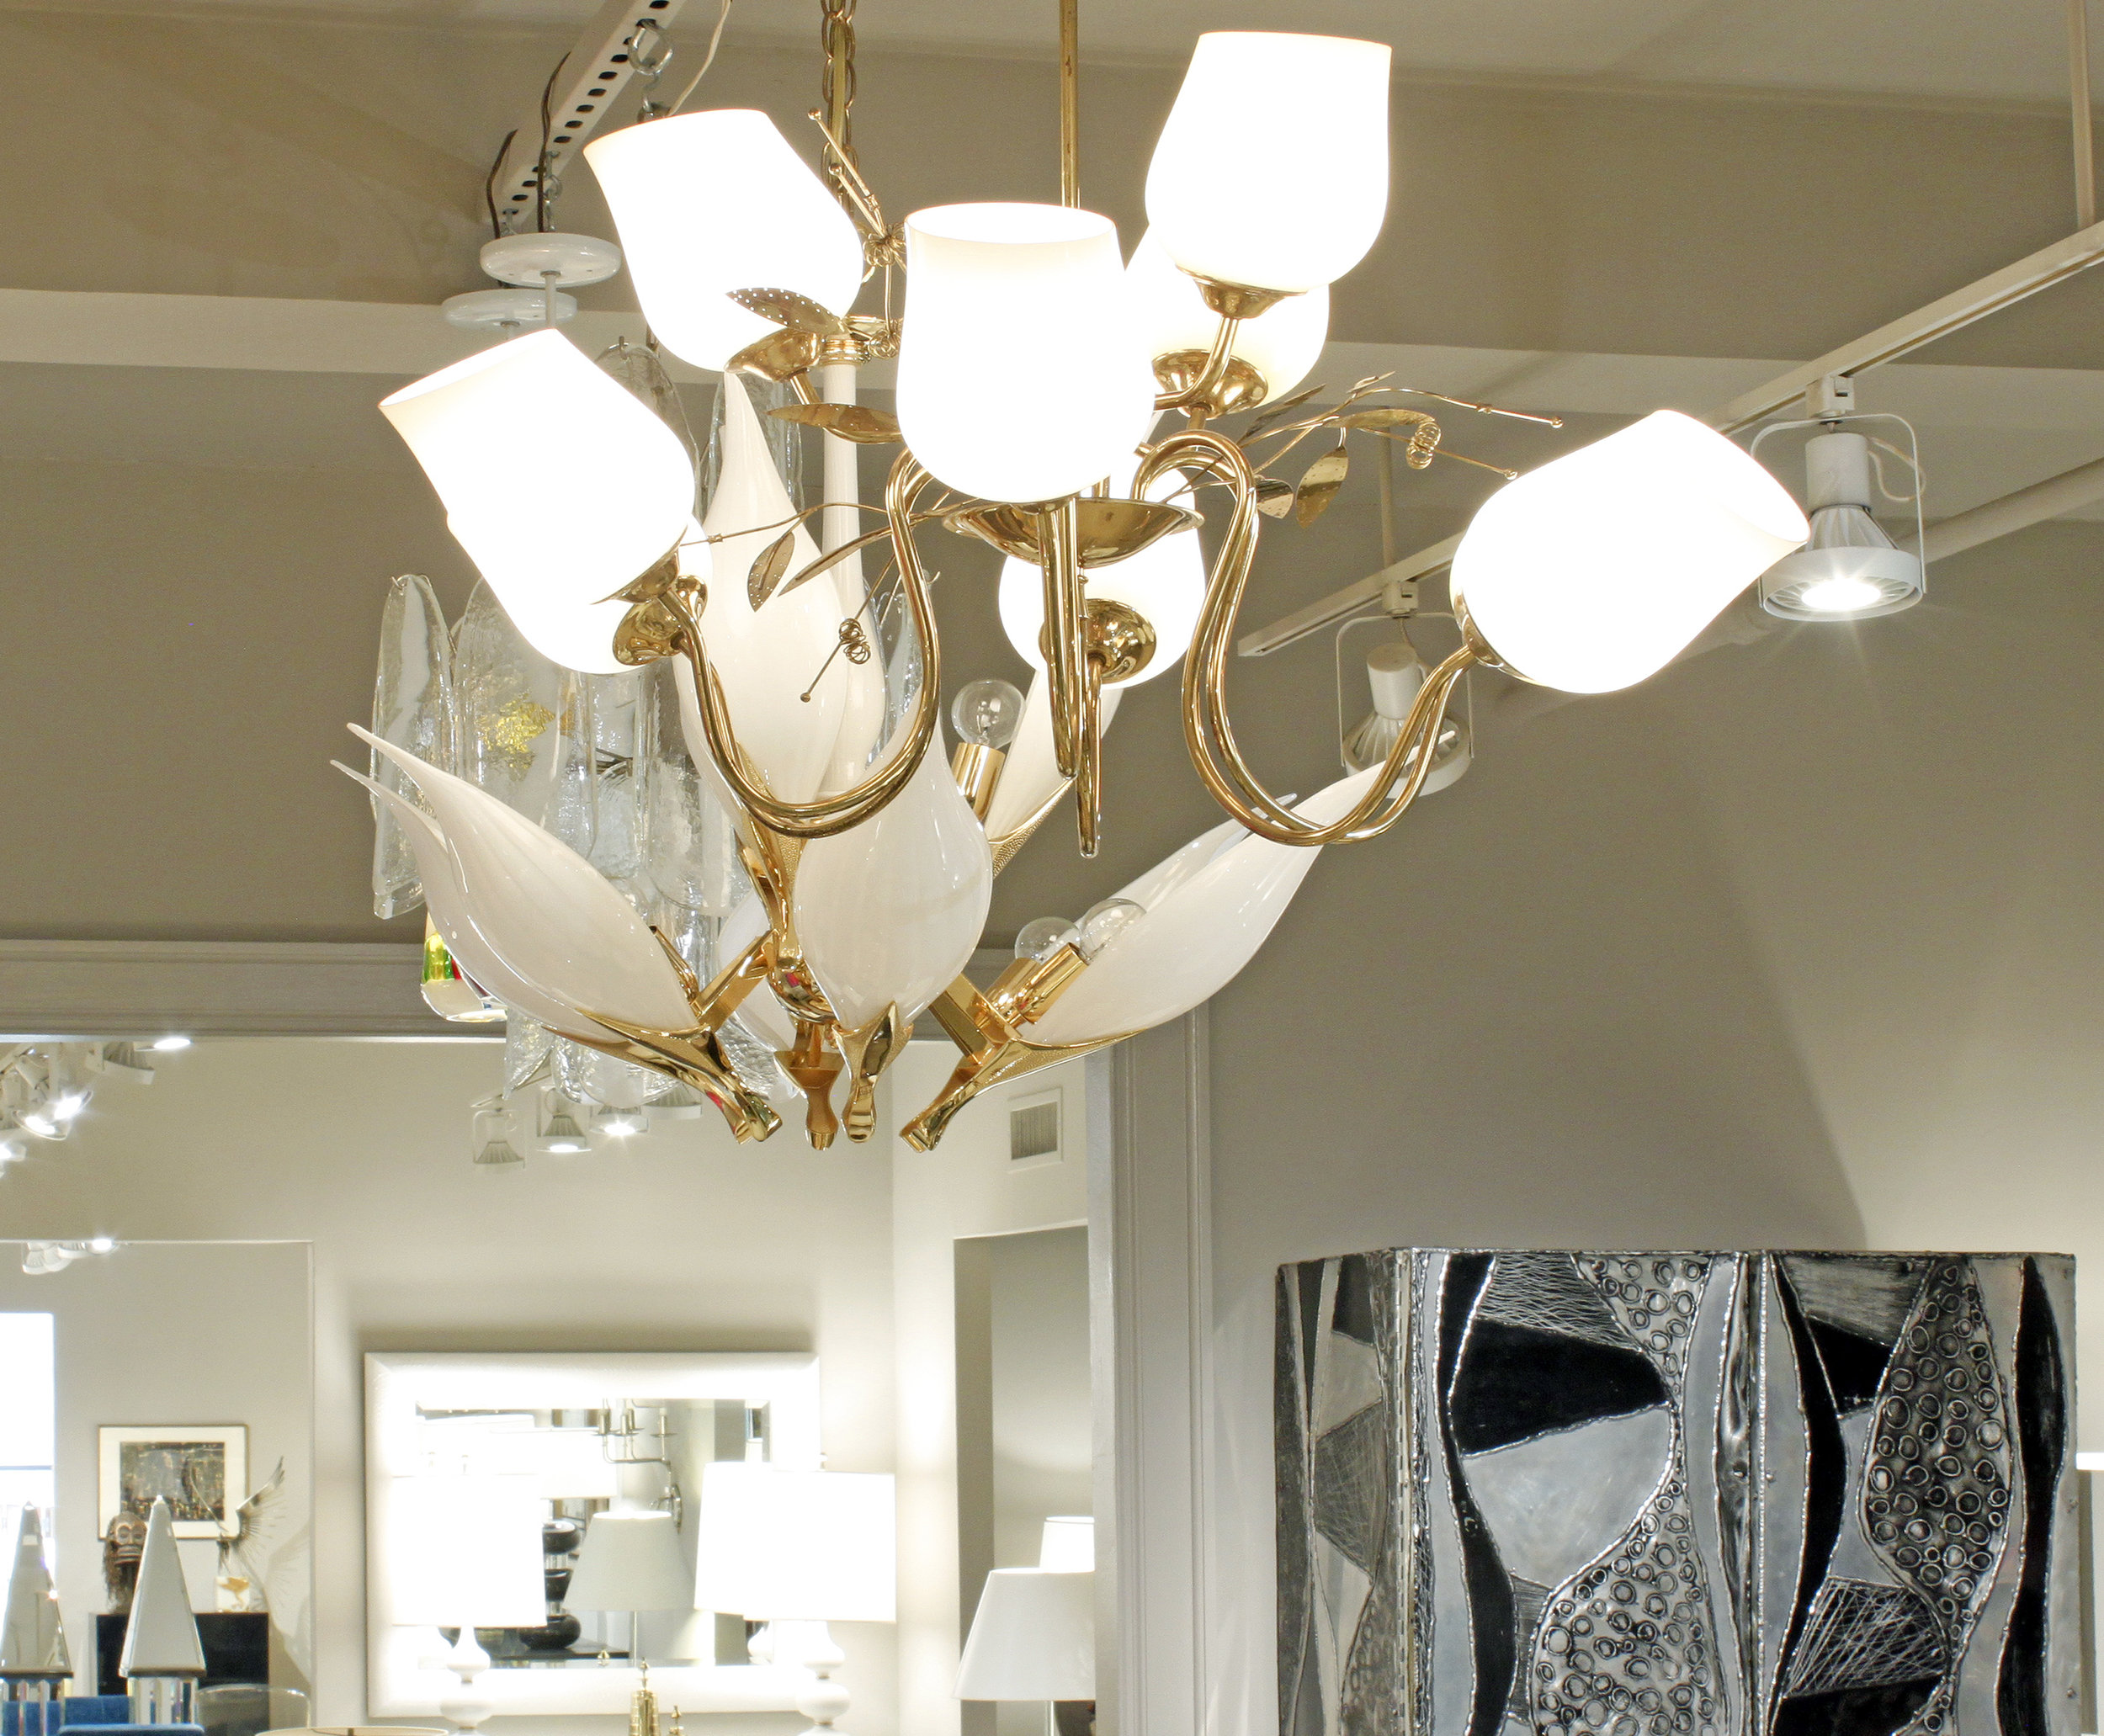 Tynell 150 brass+9amberglass shds chandelier224 hires atm.jpg